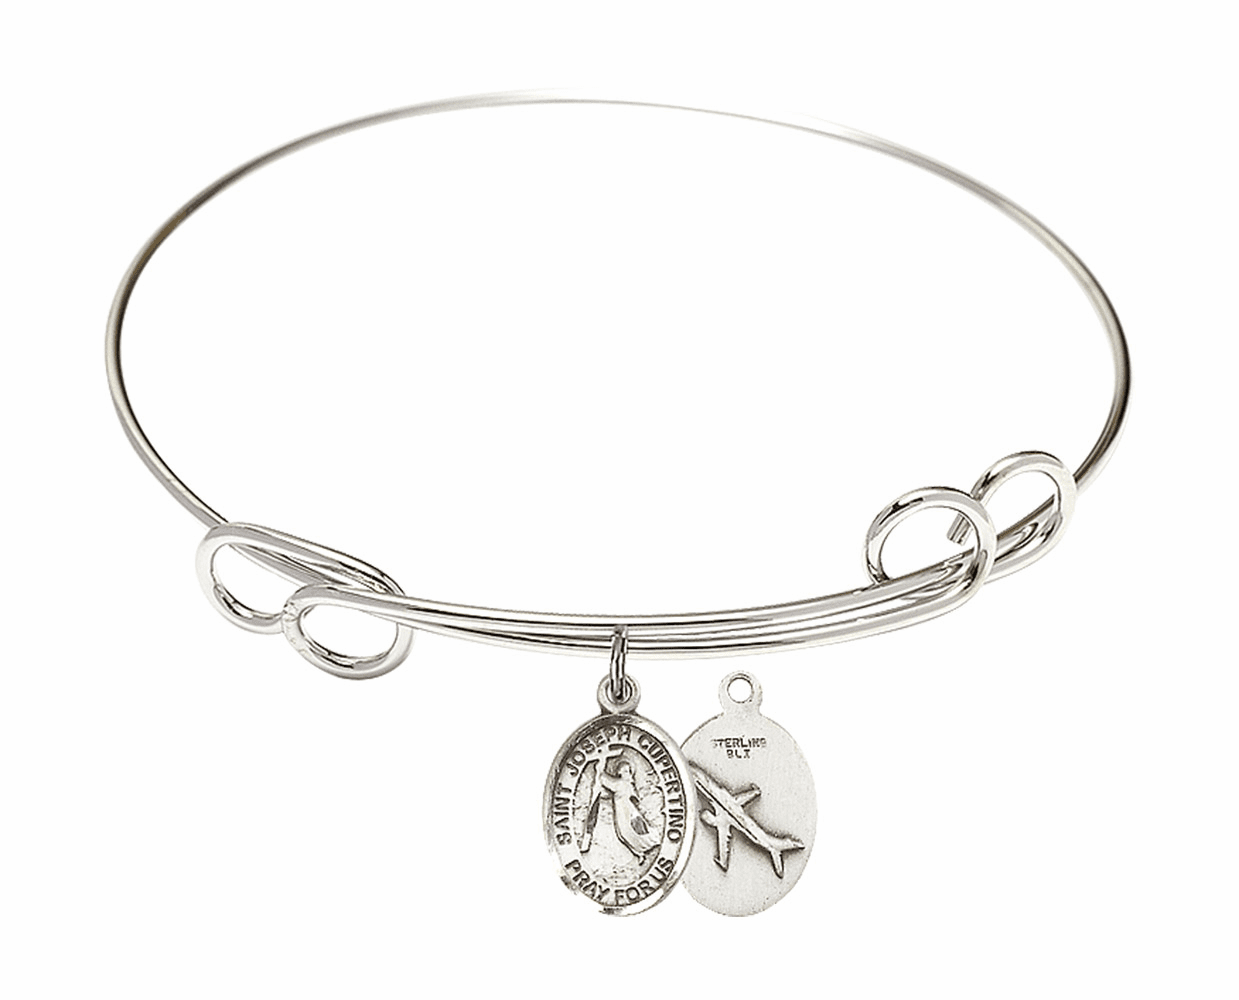 Round Loop St Joseph of Cupertino Airplane Bangle Charm Bracelet by Bliss